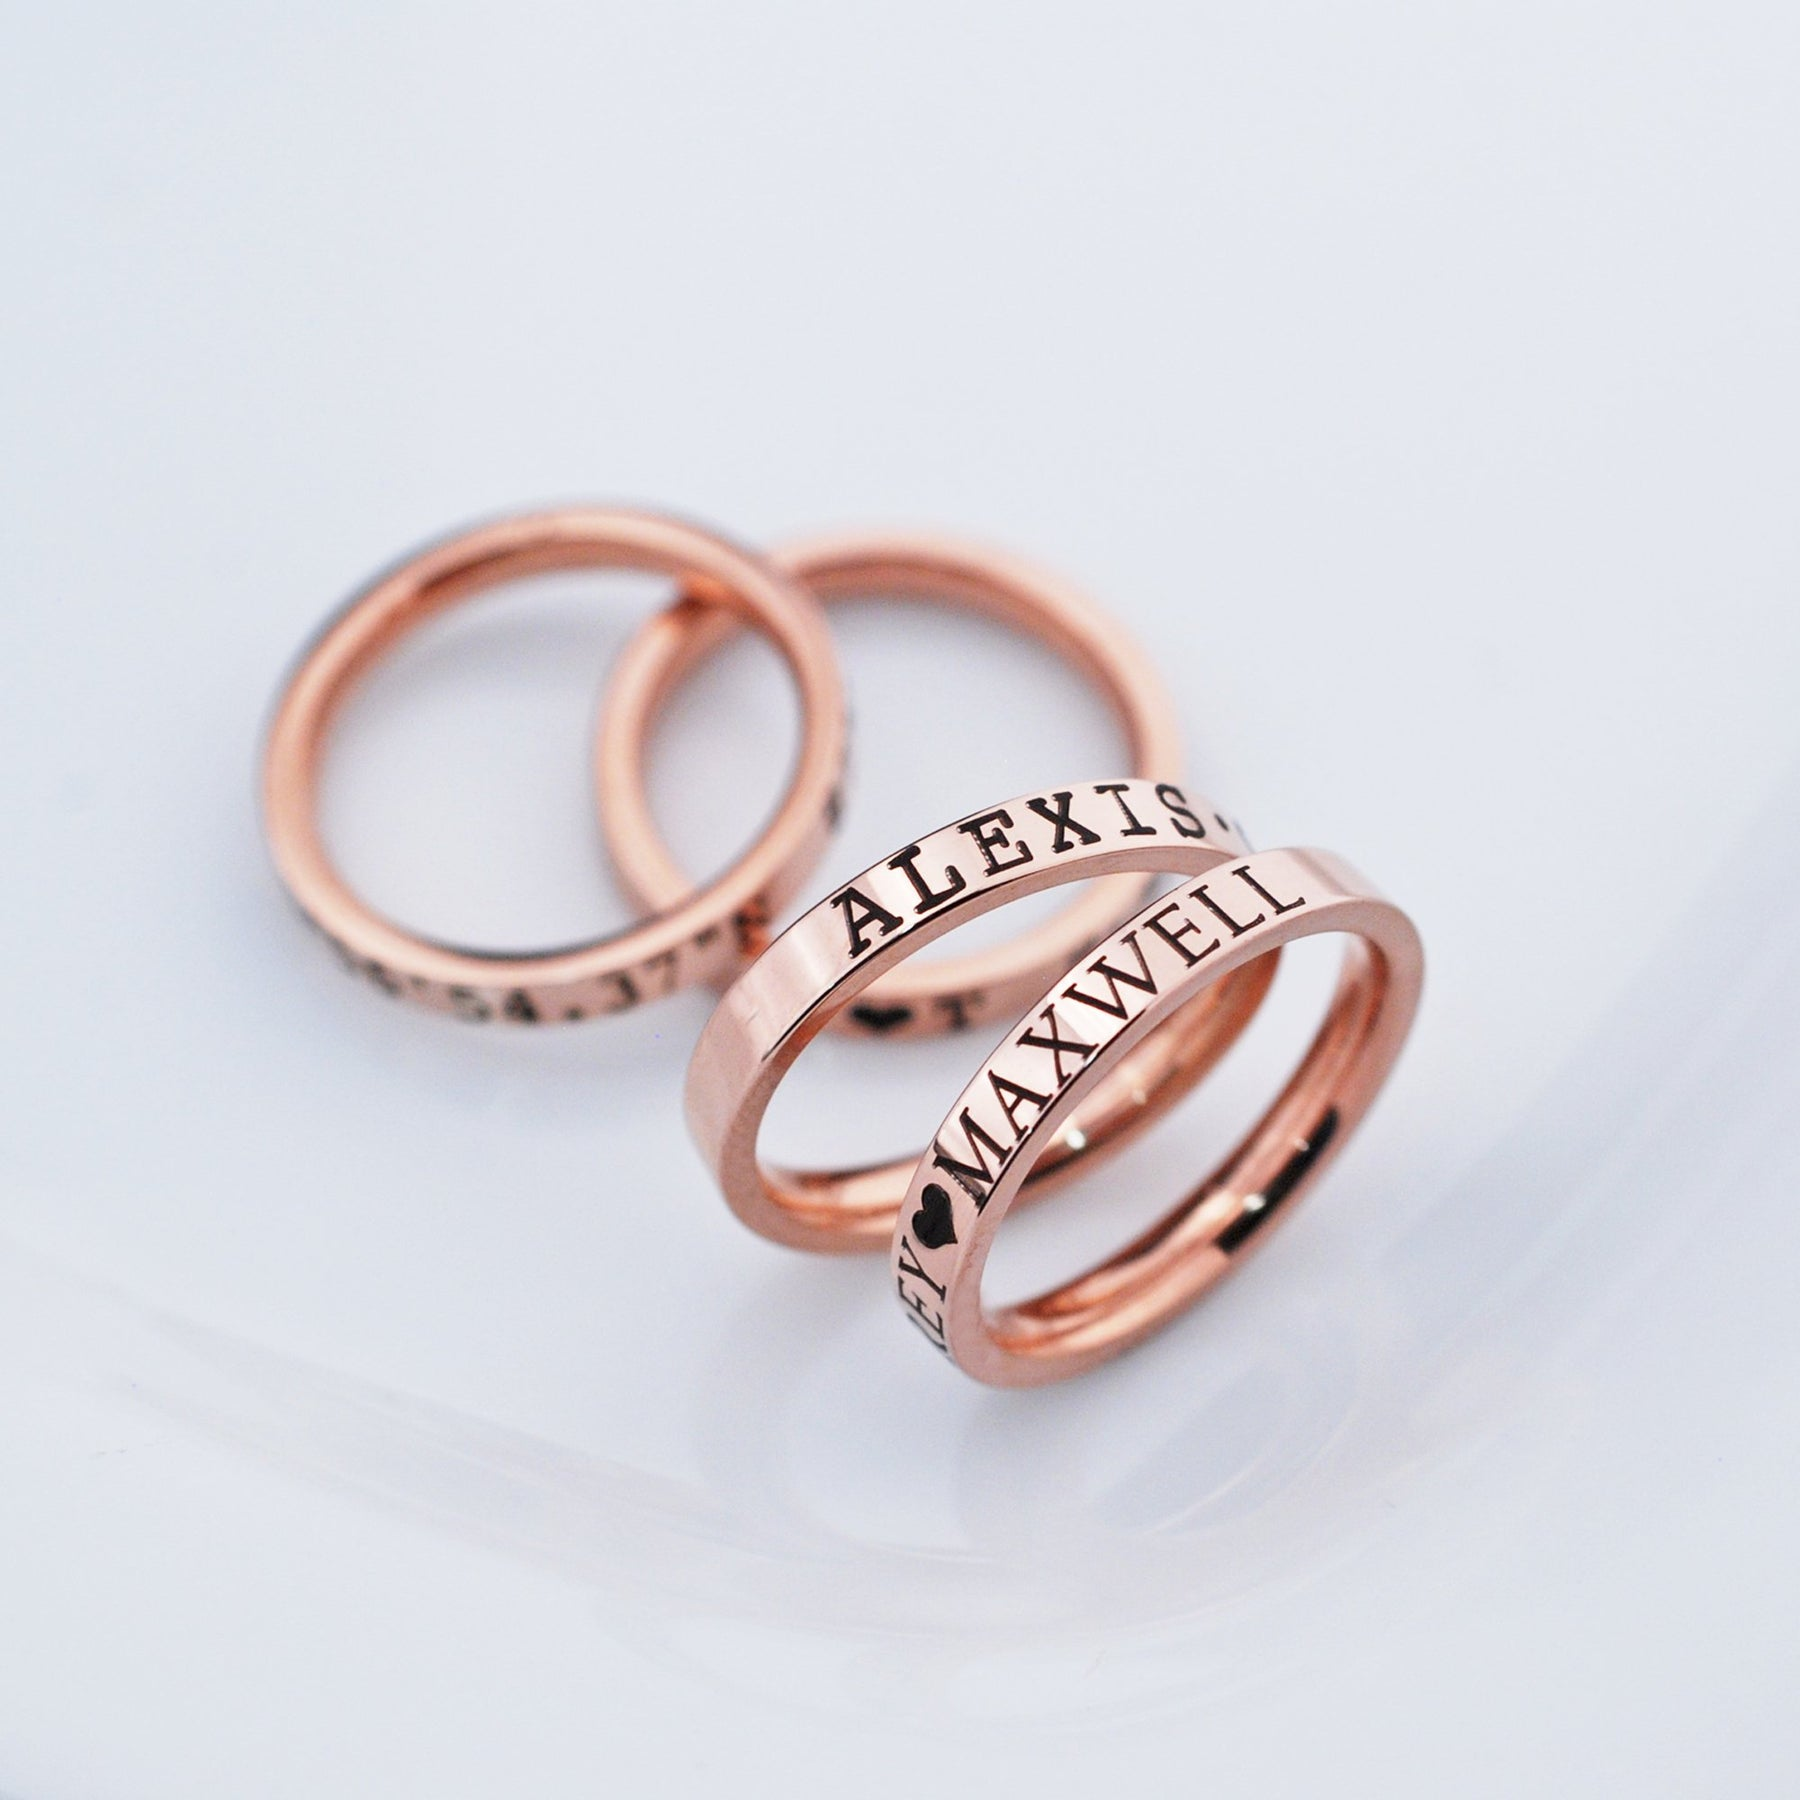 Personalized rose gold rings engraved with names.